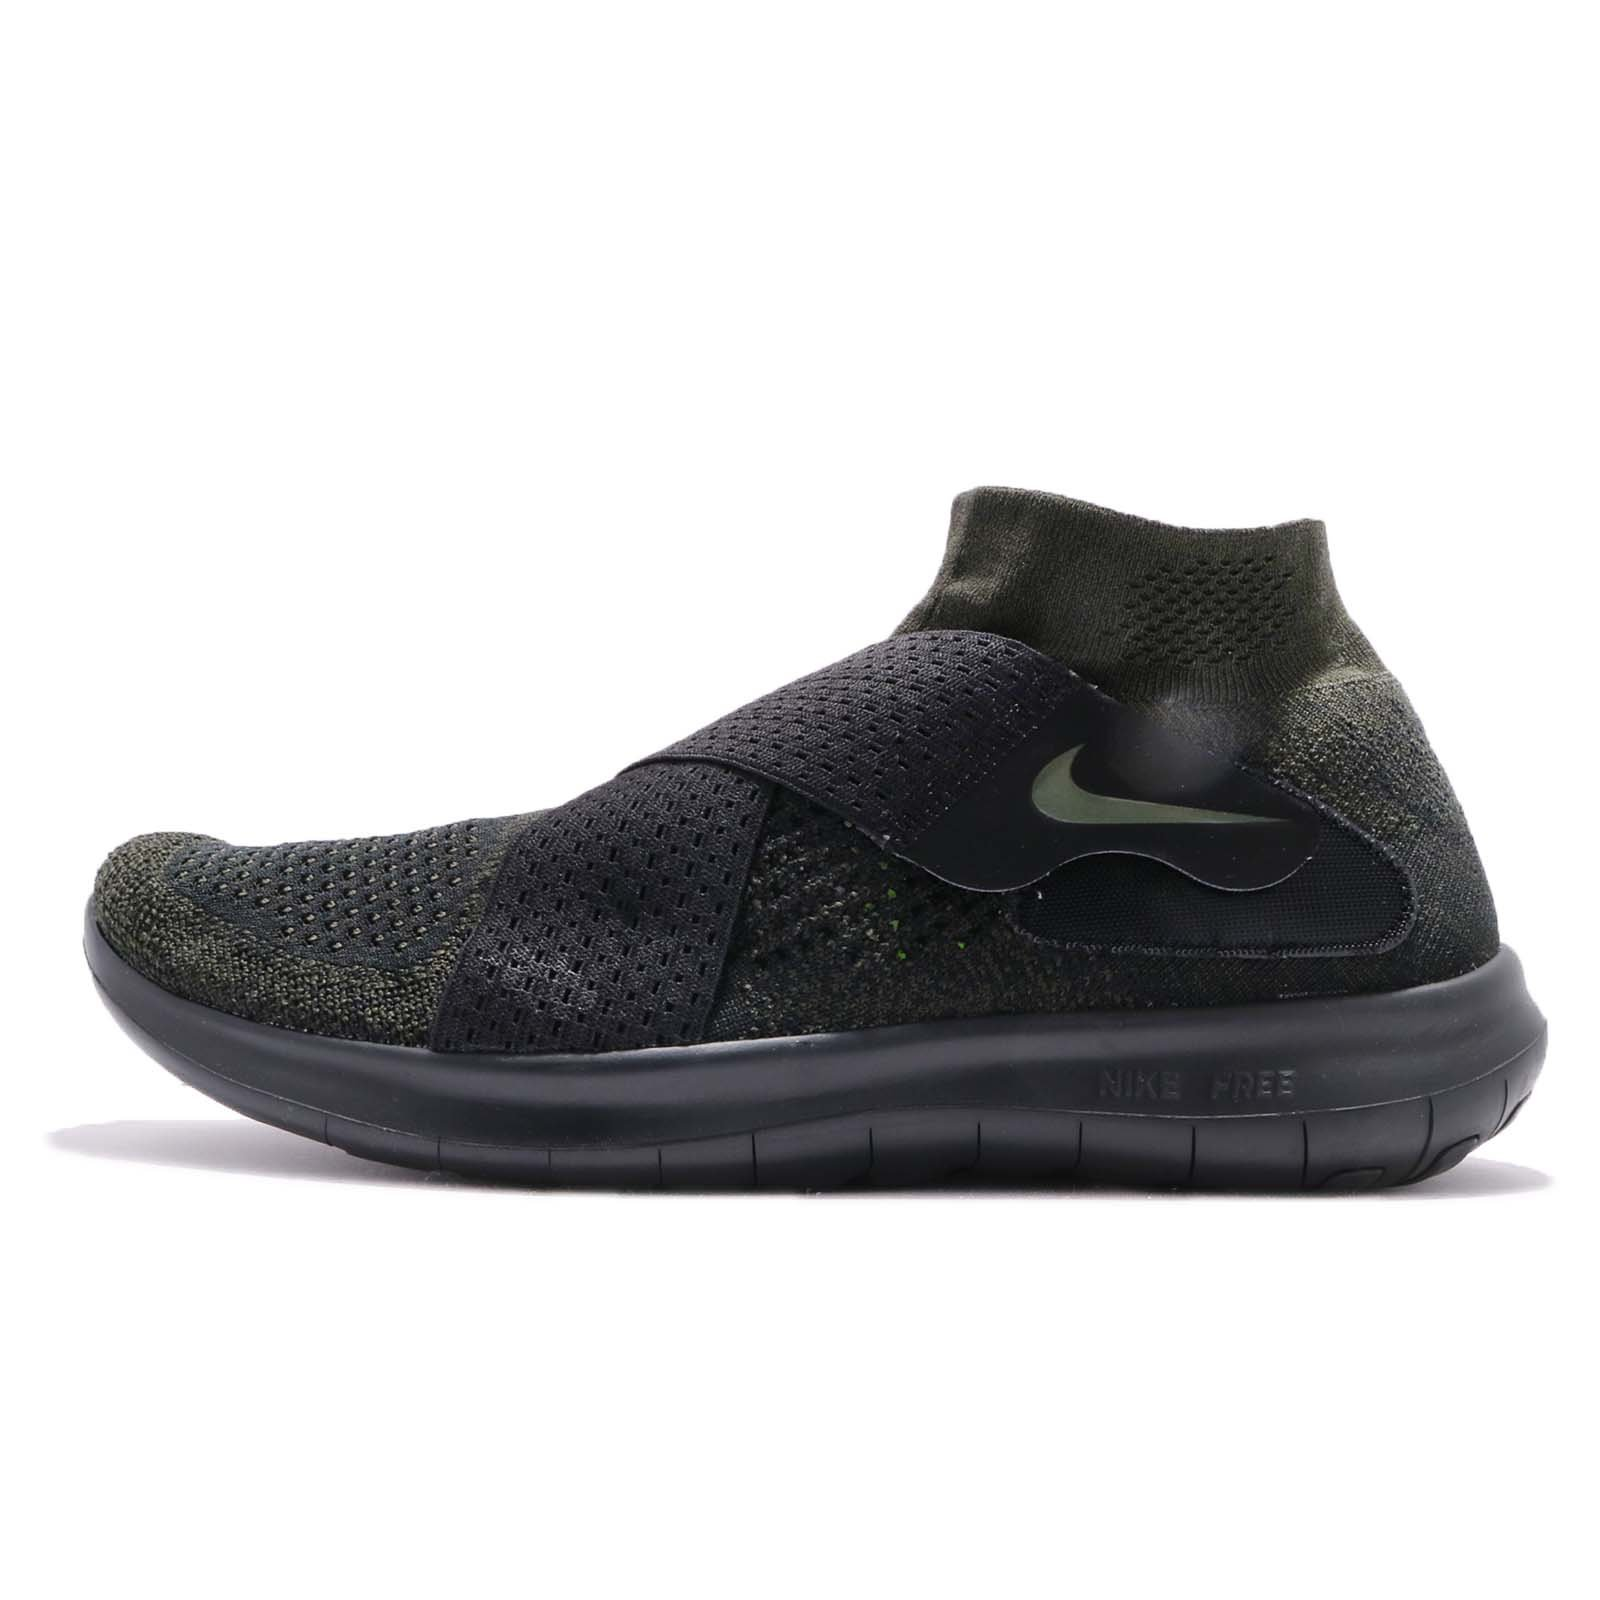 d4625a36f45e Galleon - NIKE Mens Free RN Motion Flyknit 2017 Running Shoe Black Dark Grey-Anthracite-Volt  9.0 (11 D(M) US